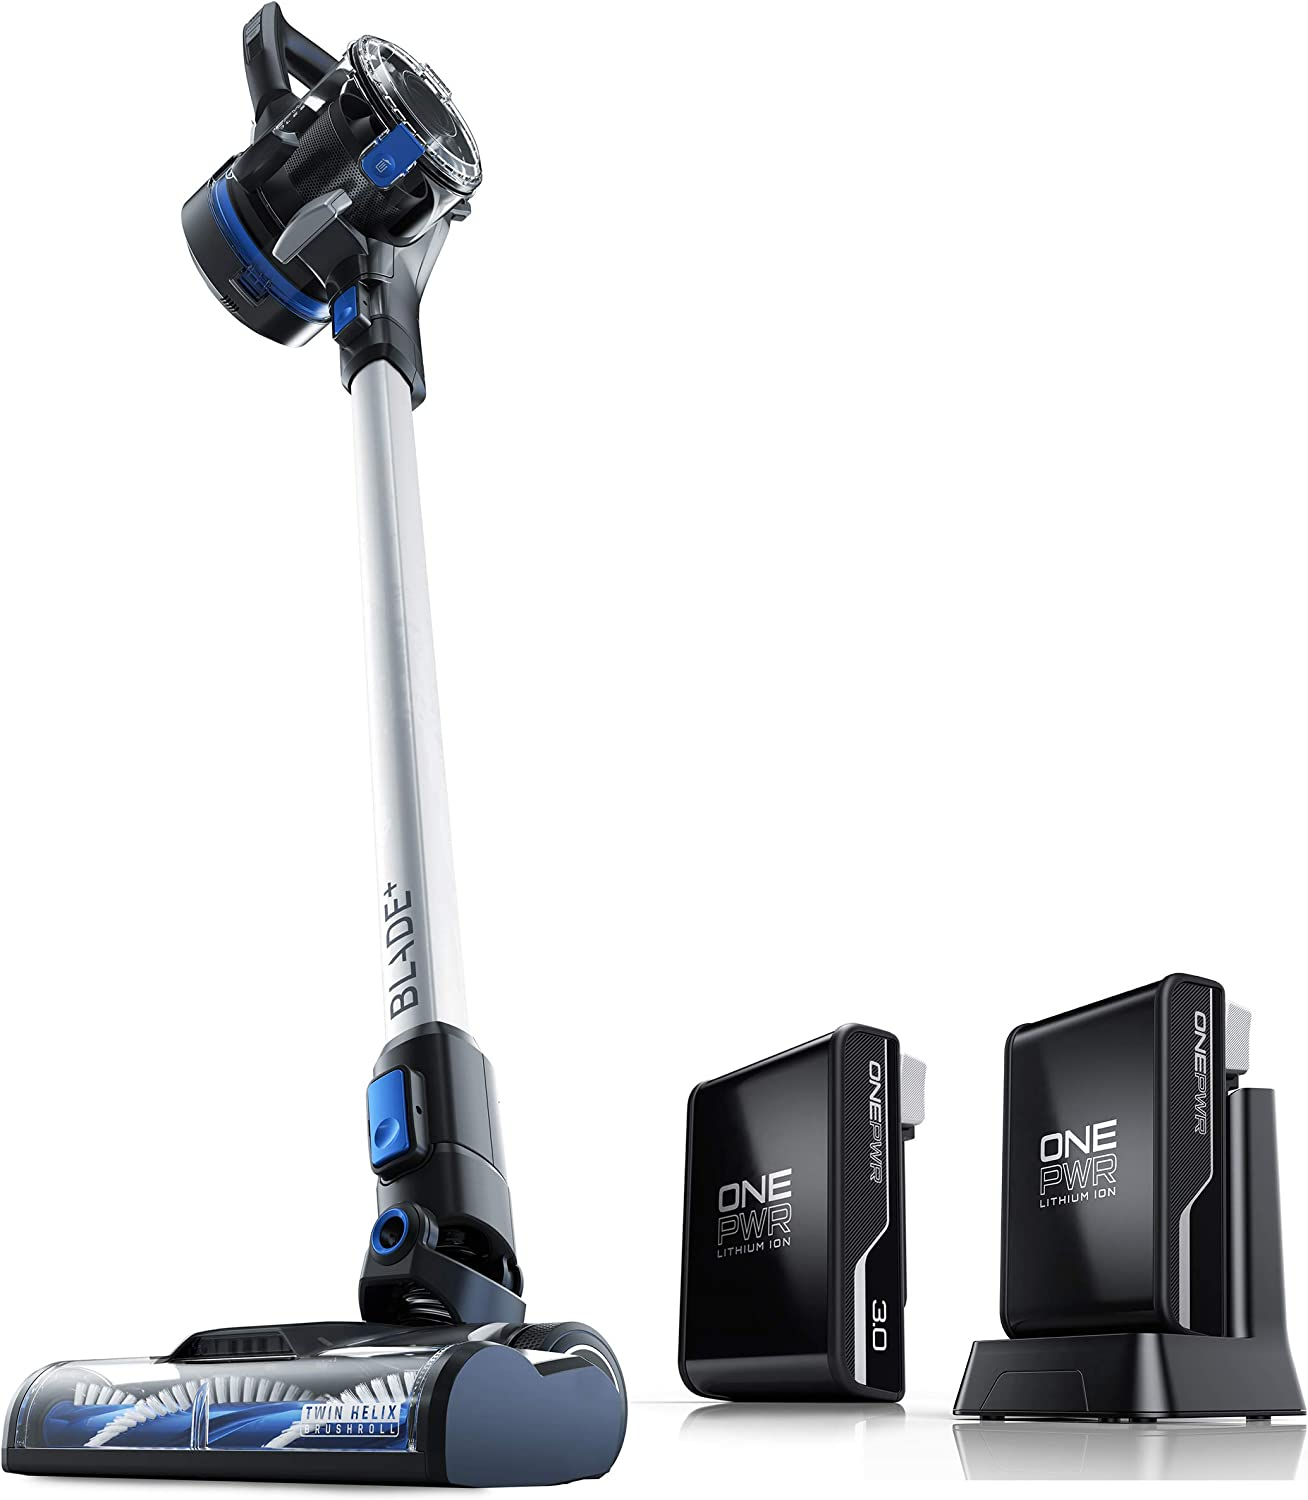 Hoover ONEPWR Blade+ Cordless Stick Vacuum Cleaner with Additional 3Ah Battery, BH53310, BH15030